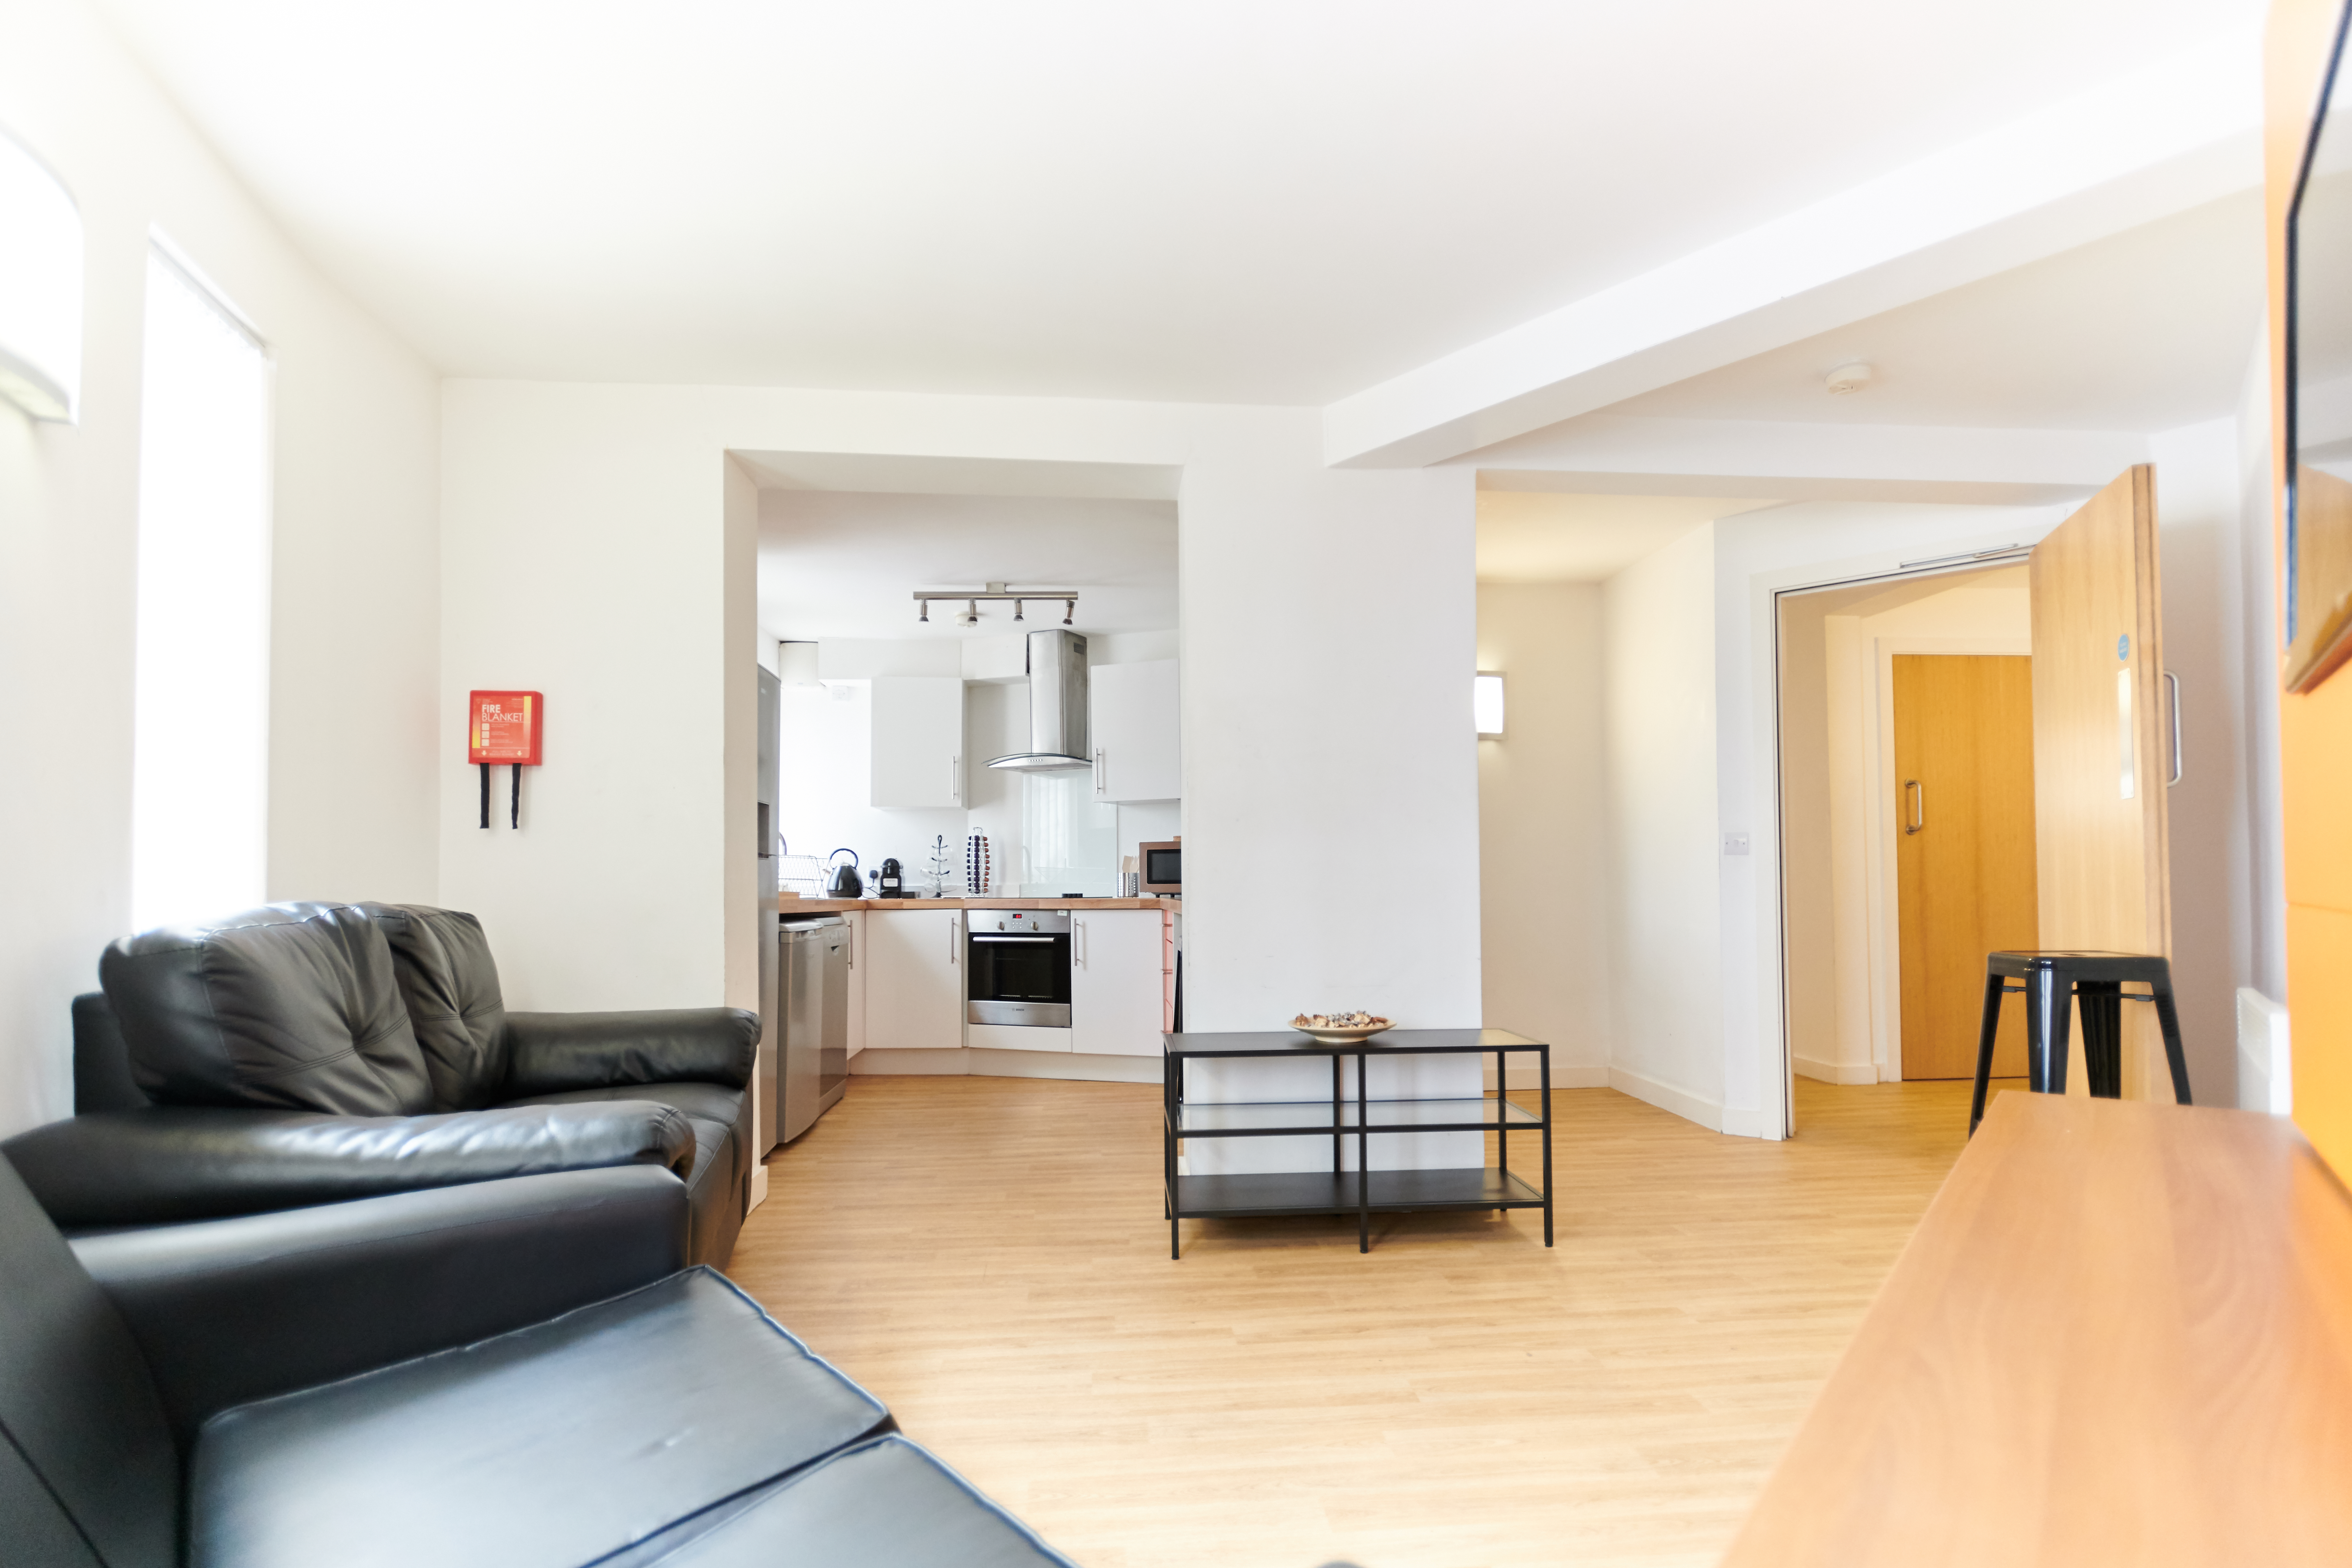 Student housing Manchester, M15 6NU - Boundary Lodge